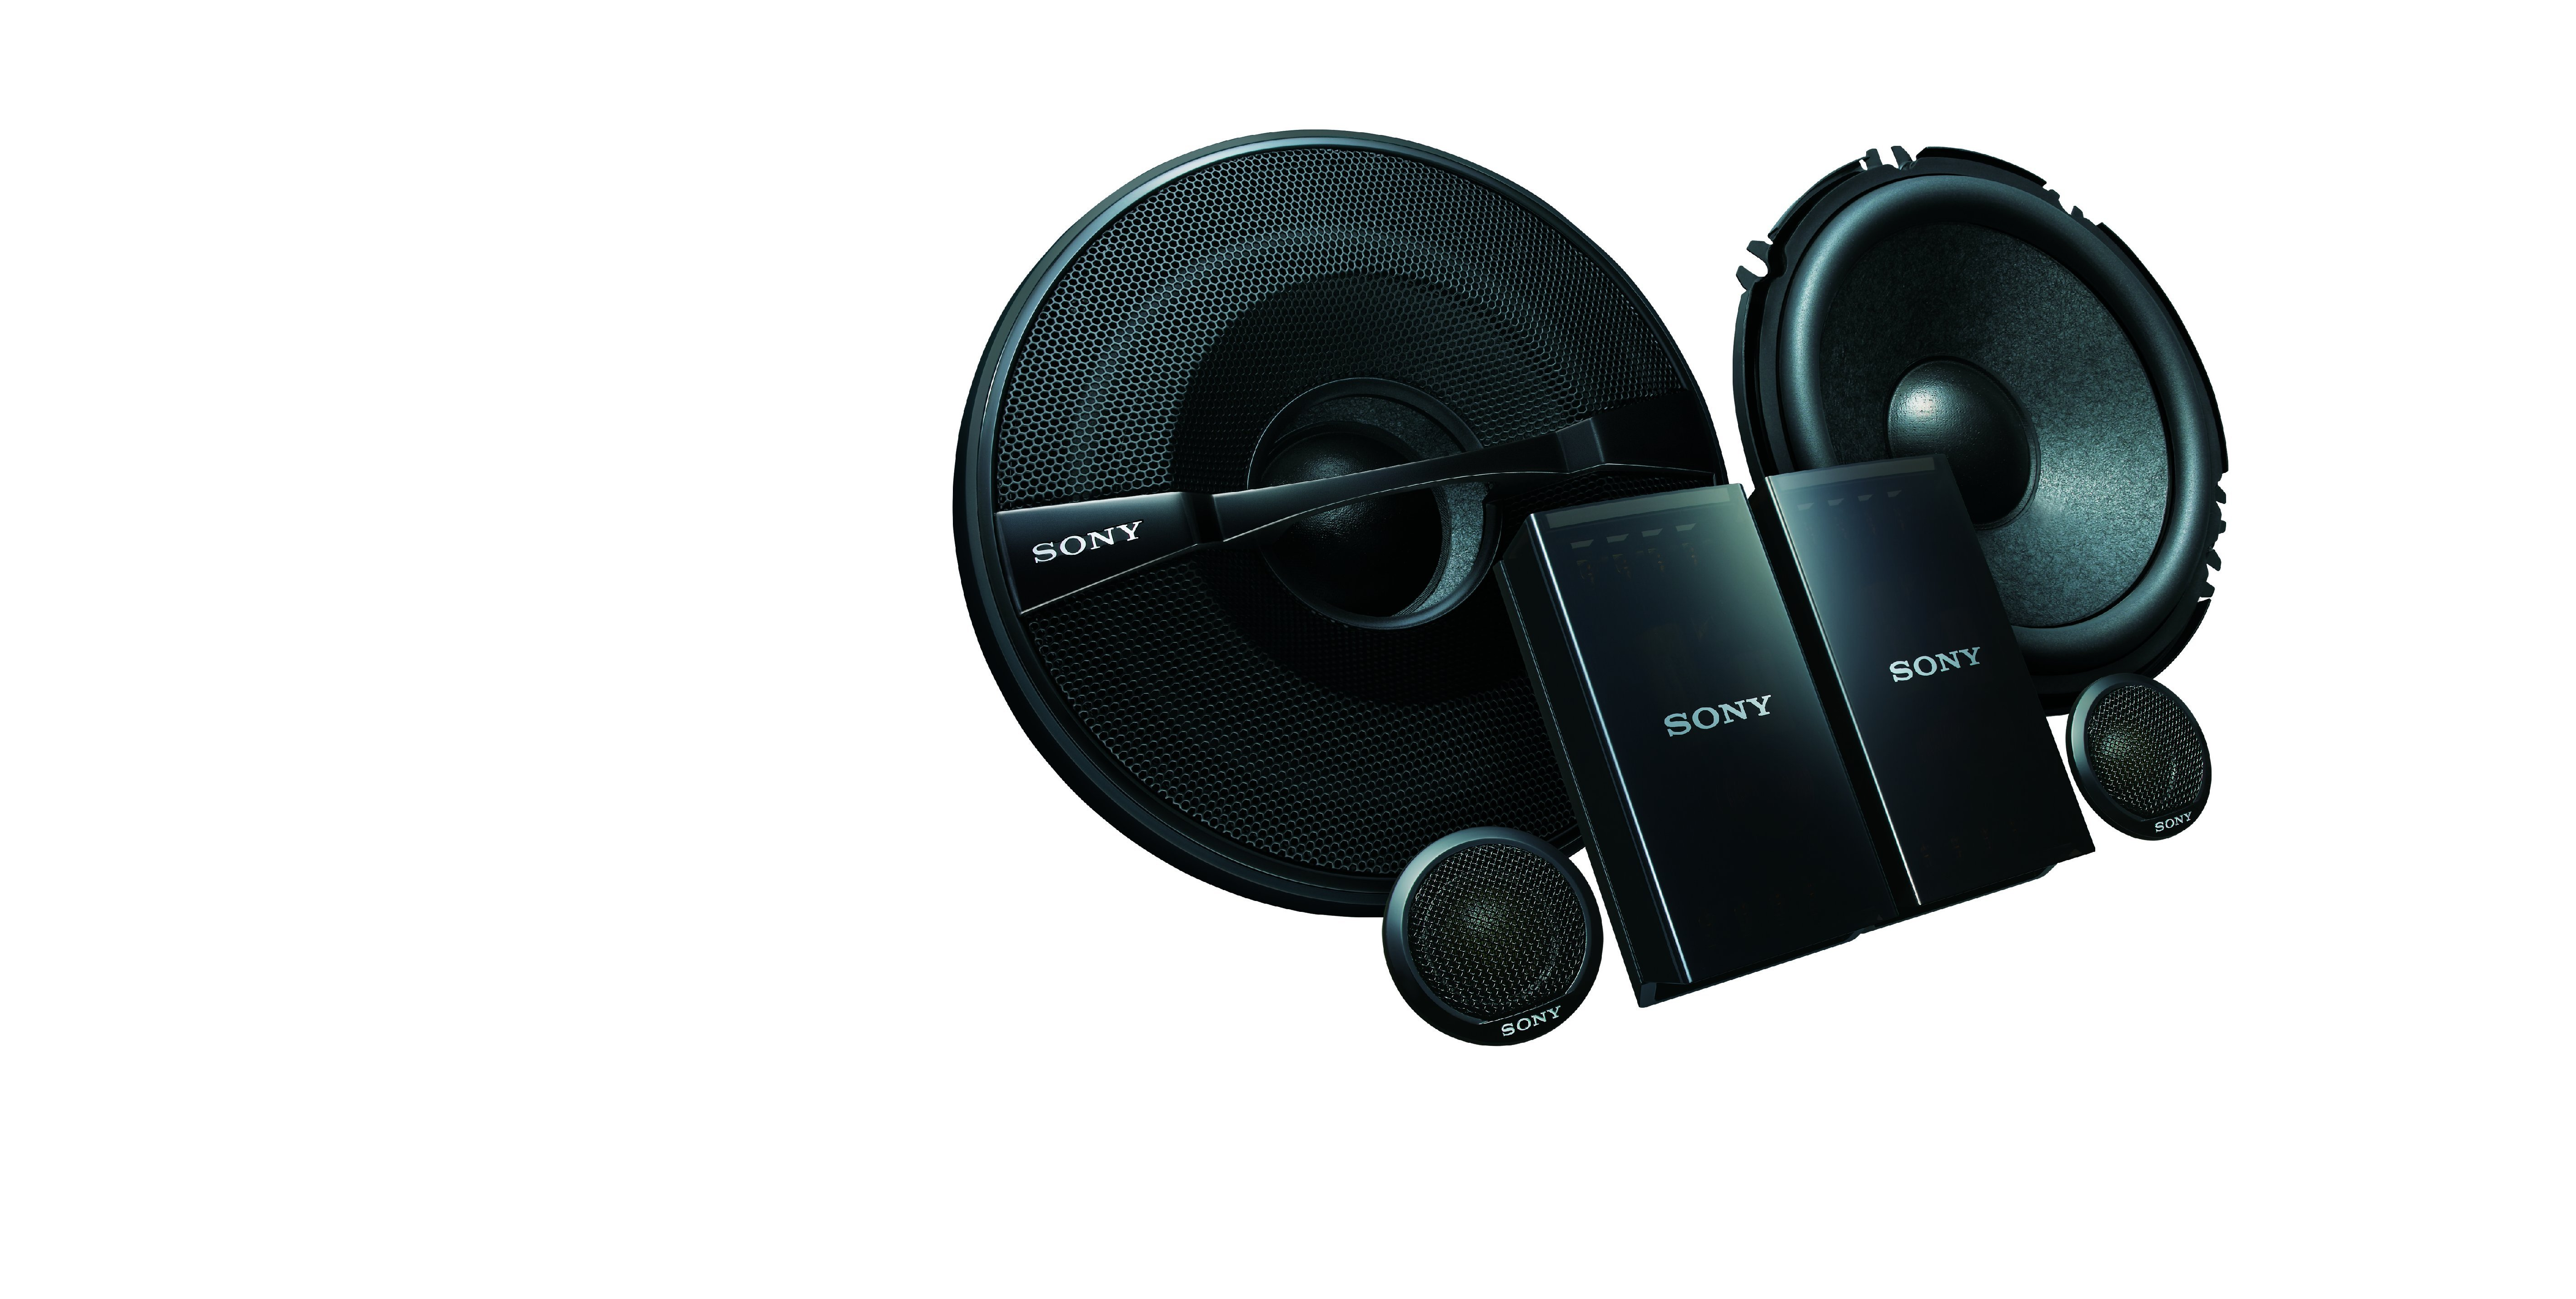 Sony XS-GS1621C GS Series 6.5 2-way Component Speakers #componentspeakers Sony XS-GS1621C GS Series 6.5 2-way Component Speakers #componentspeakers Sony XS-GS1621C GS Series 6.5 2-way Component Speakers #componentspeakers Sony XS-GS1621C GS Series 6.5 2-way Component Speakers #componentspeakers